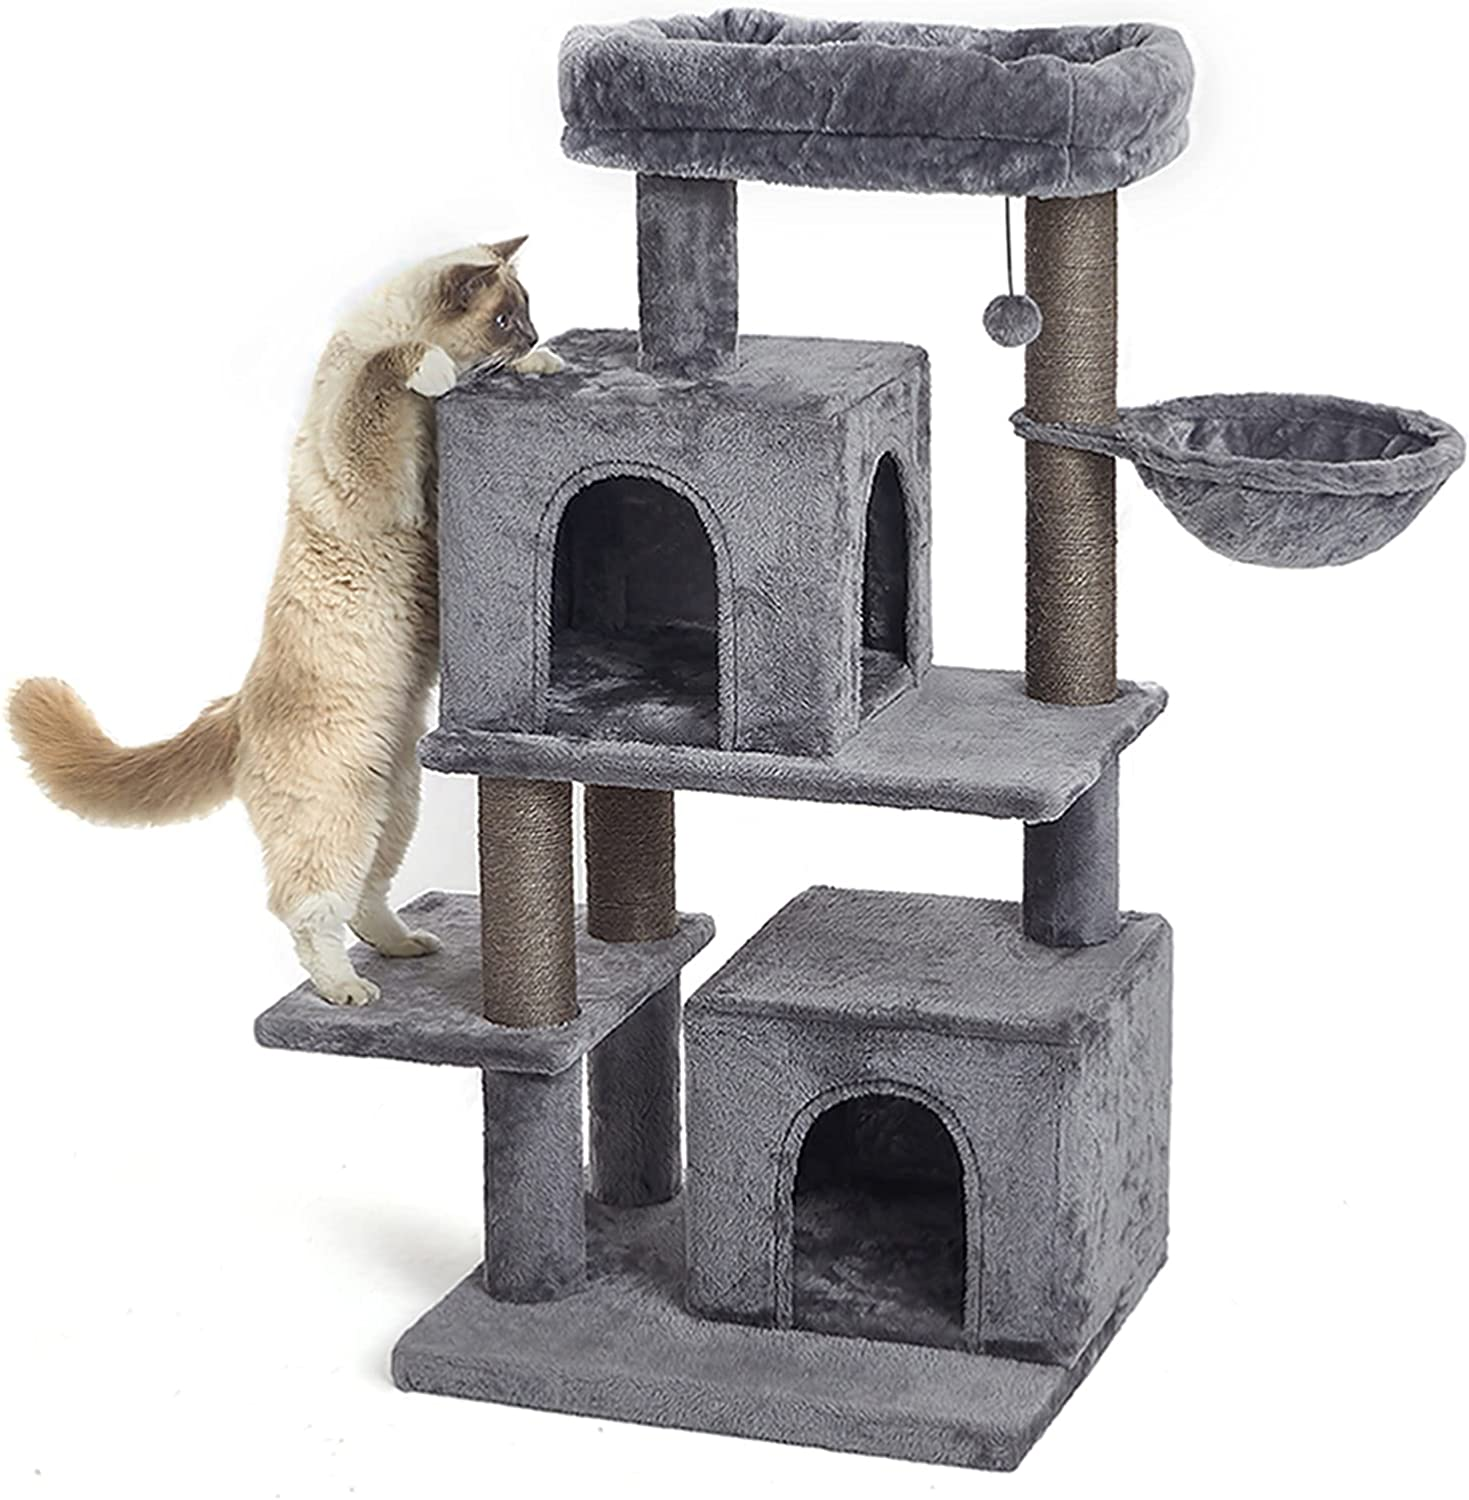 Max 48% OFF 45 Inches Multi-Level Furniture Cat Tower New products world's highest quality popular